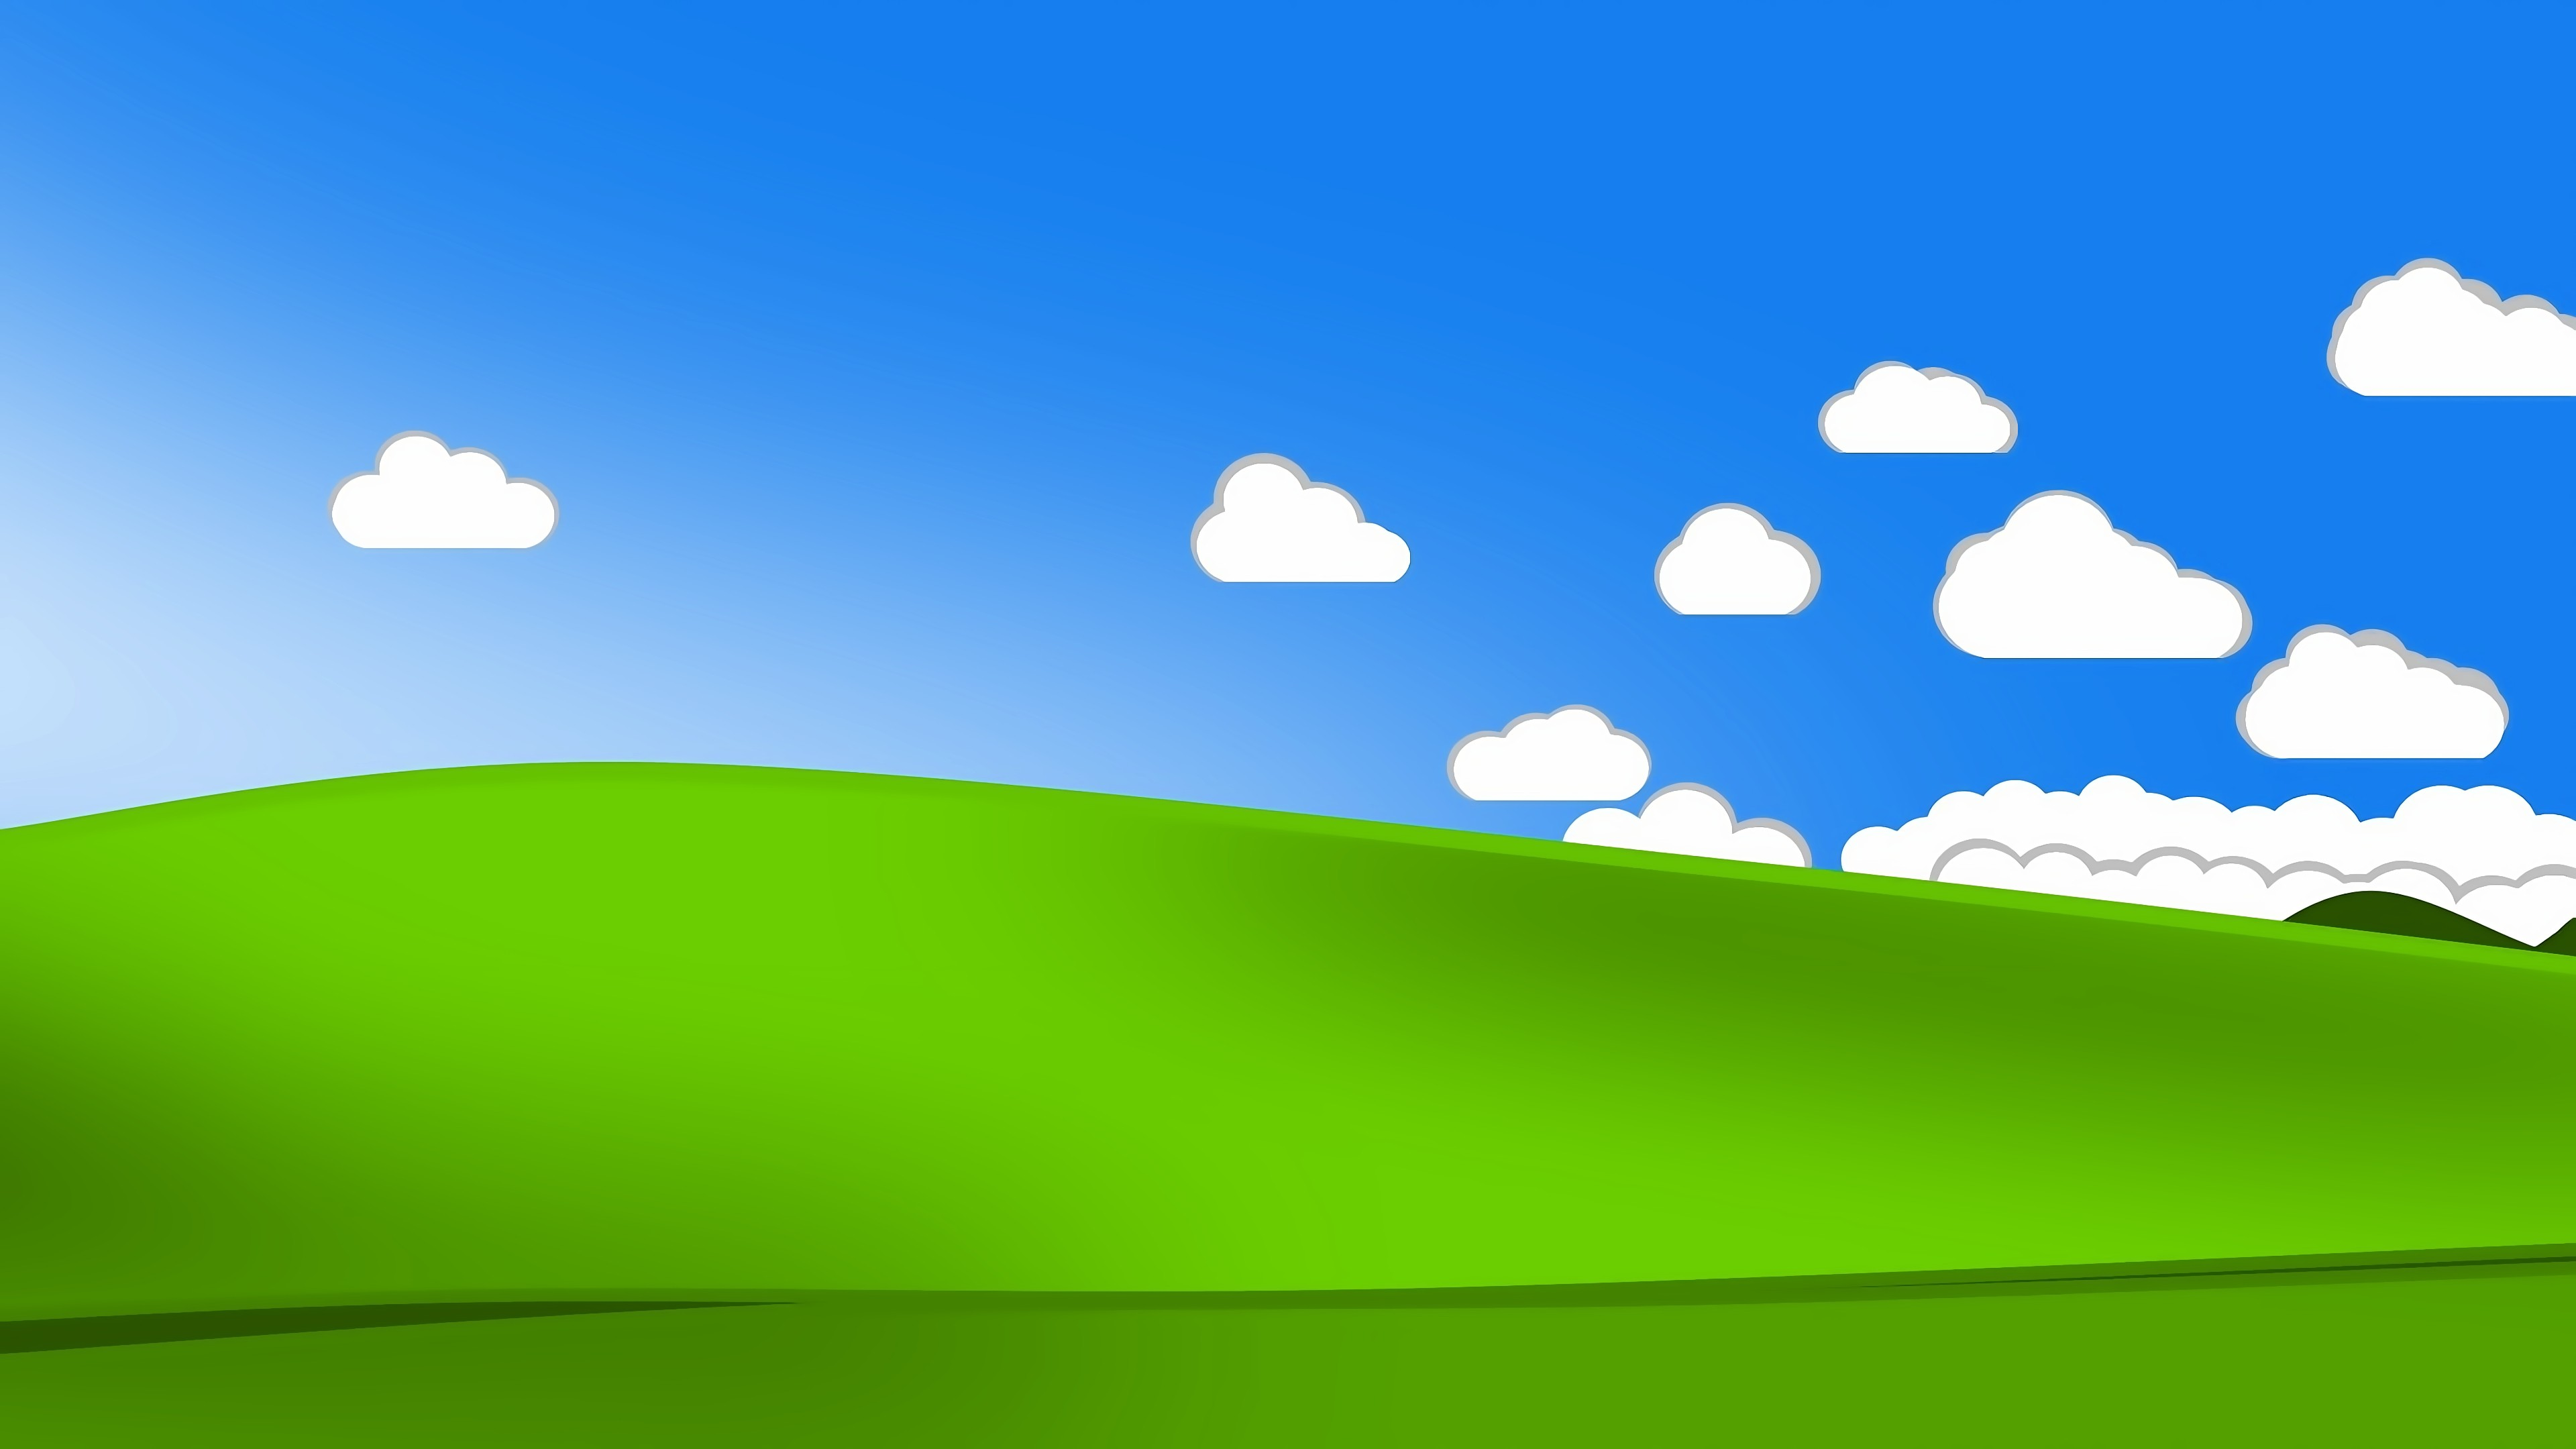 Windows Xp Bliss 1080p Posted By Samantha Johnson